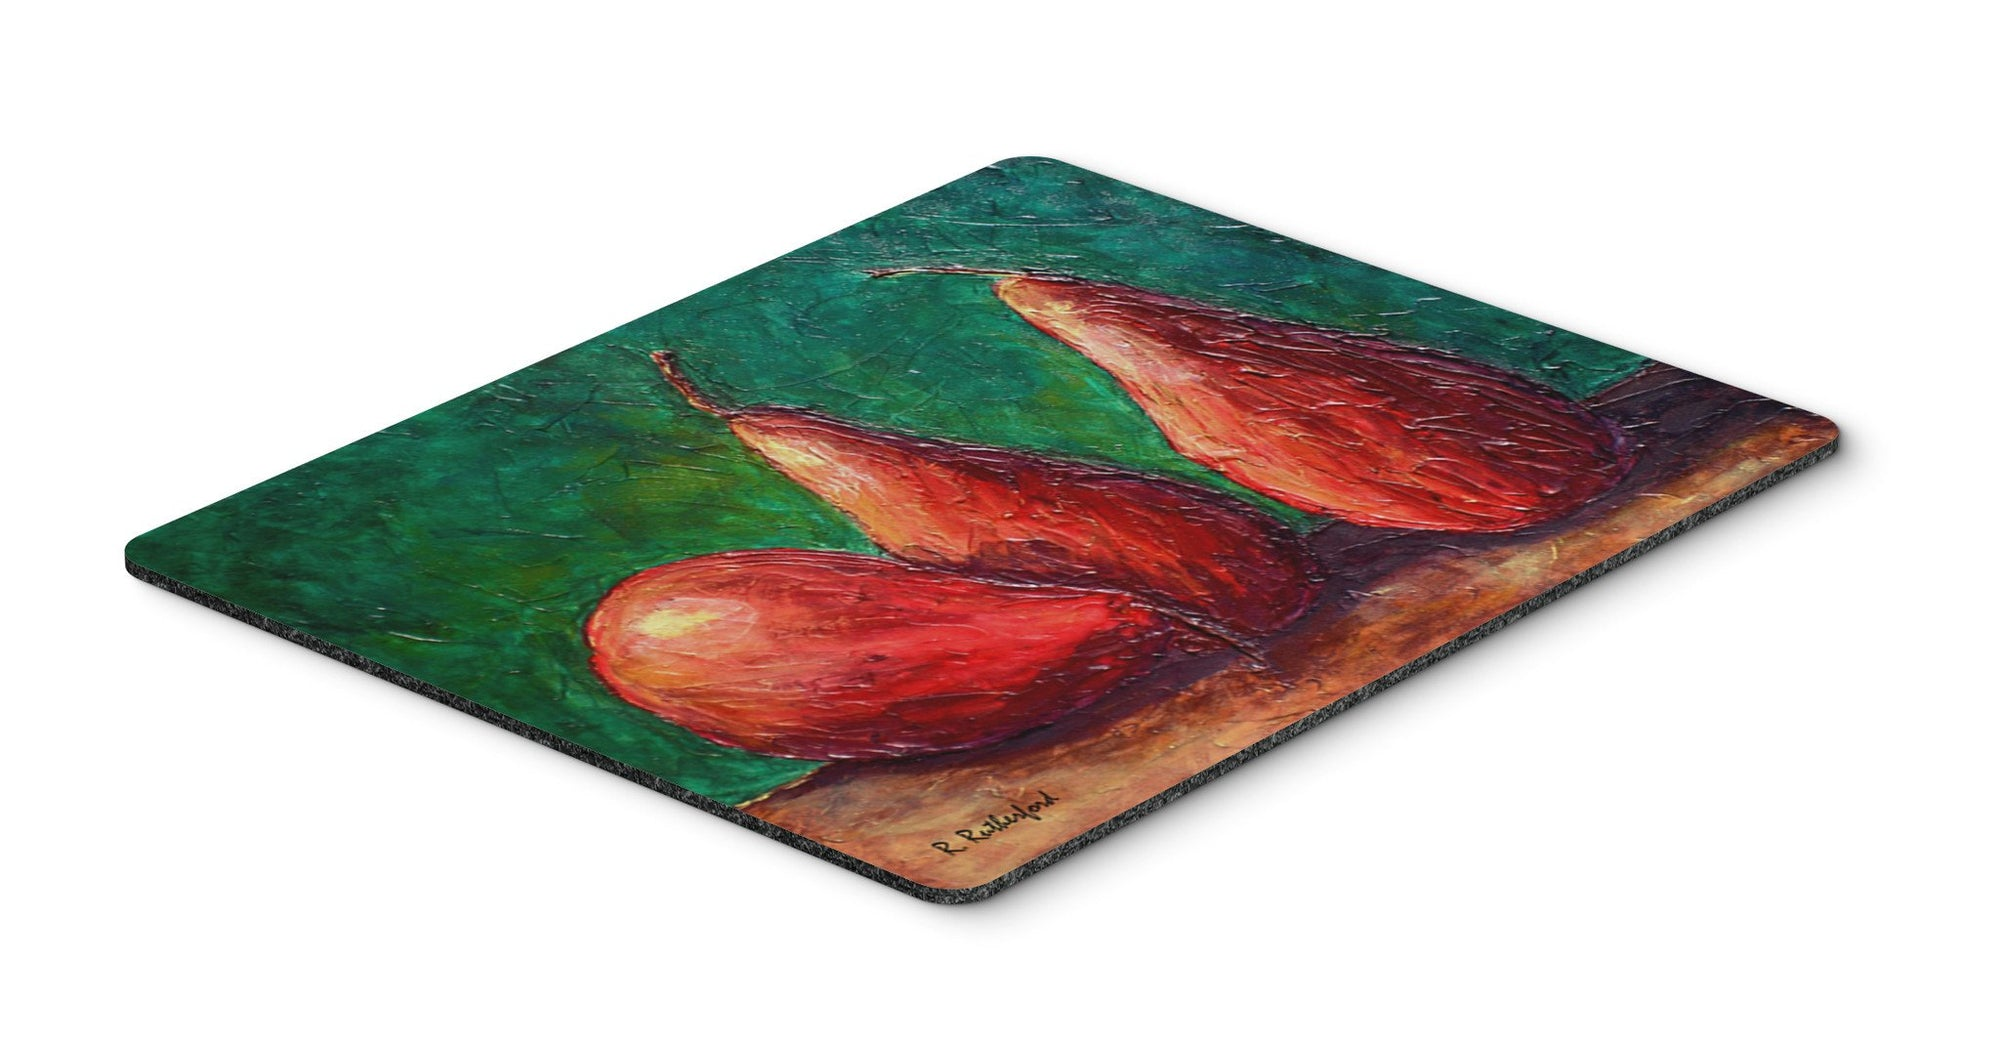 Buy this Pears Mouse Pad, Hot Pad or Trivet